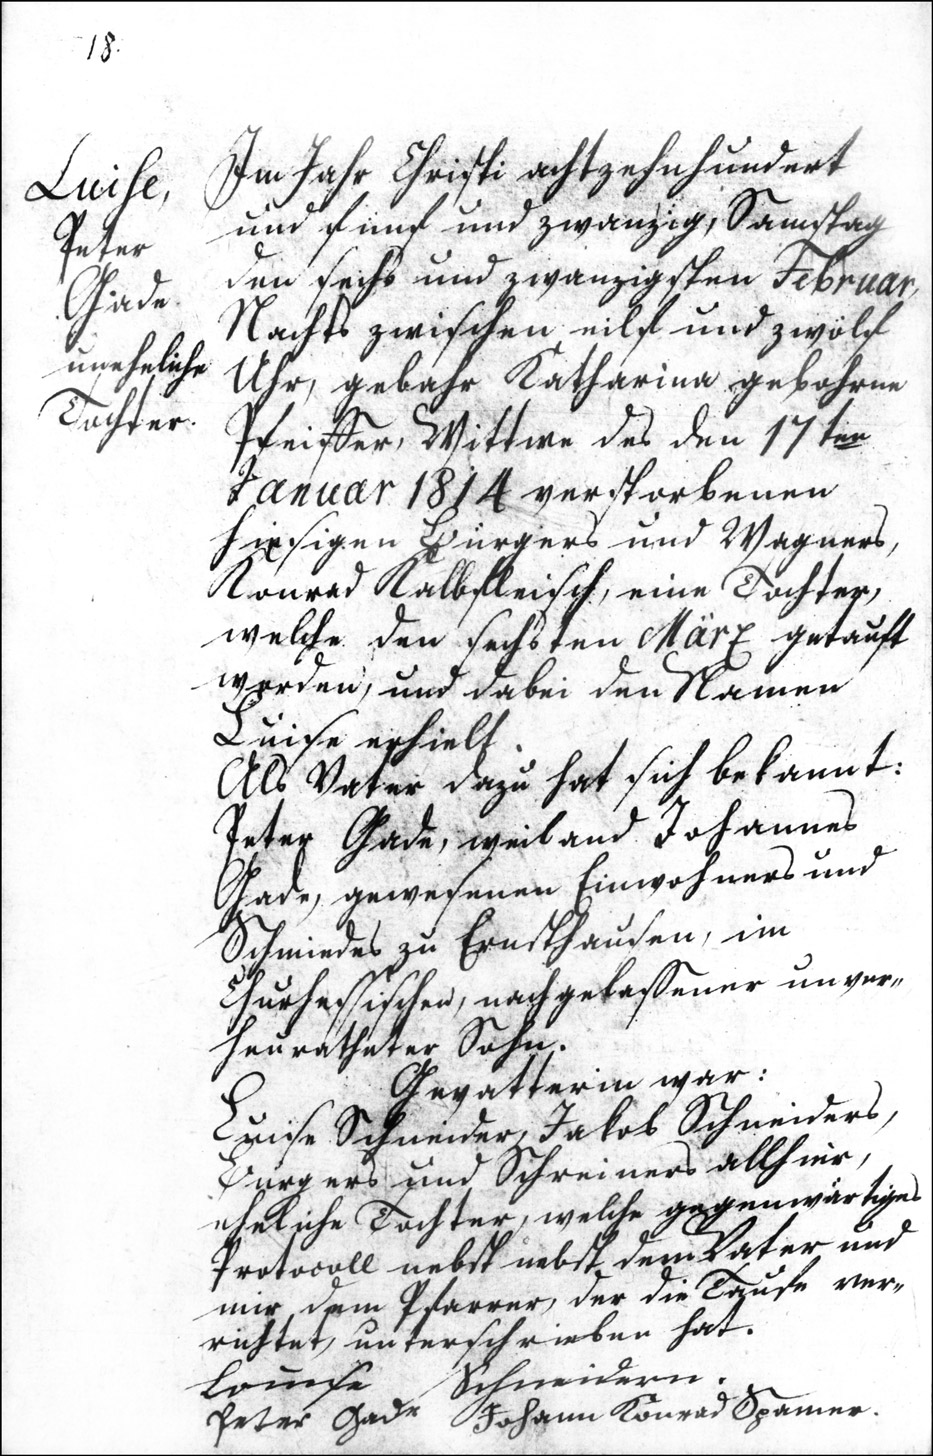 The Birth and Baptismal Record of Louise Gade - 1825